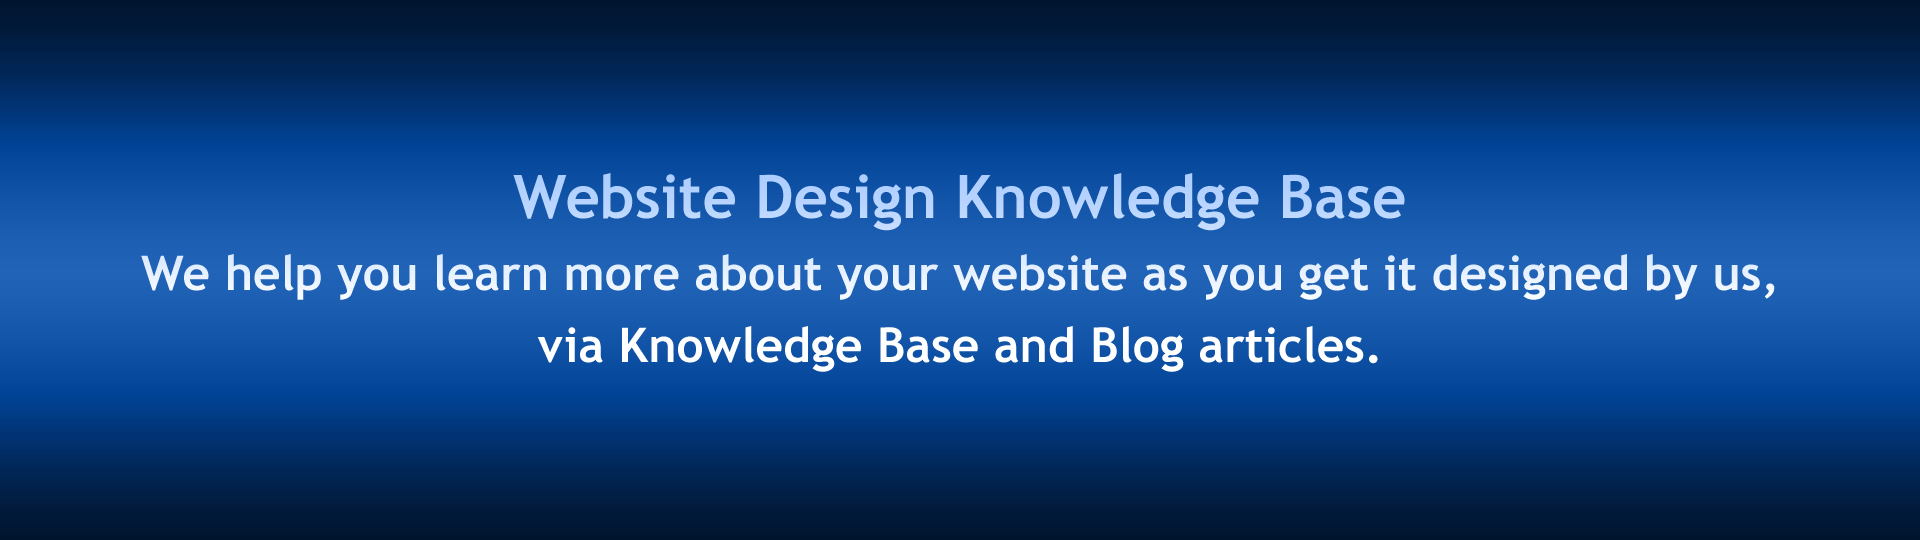 Slide 8 - Website Design Knowledge Base